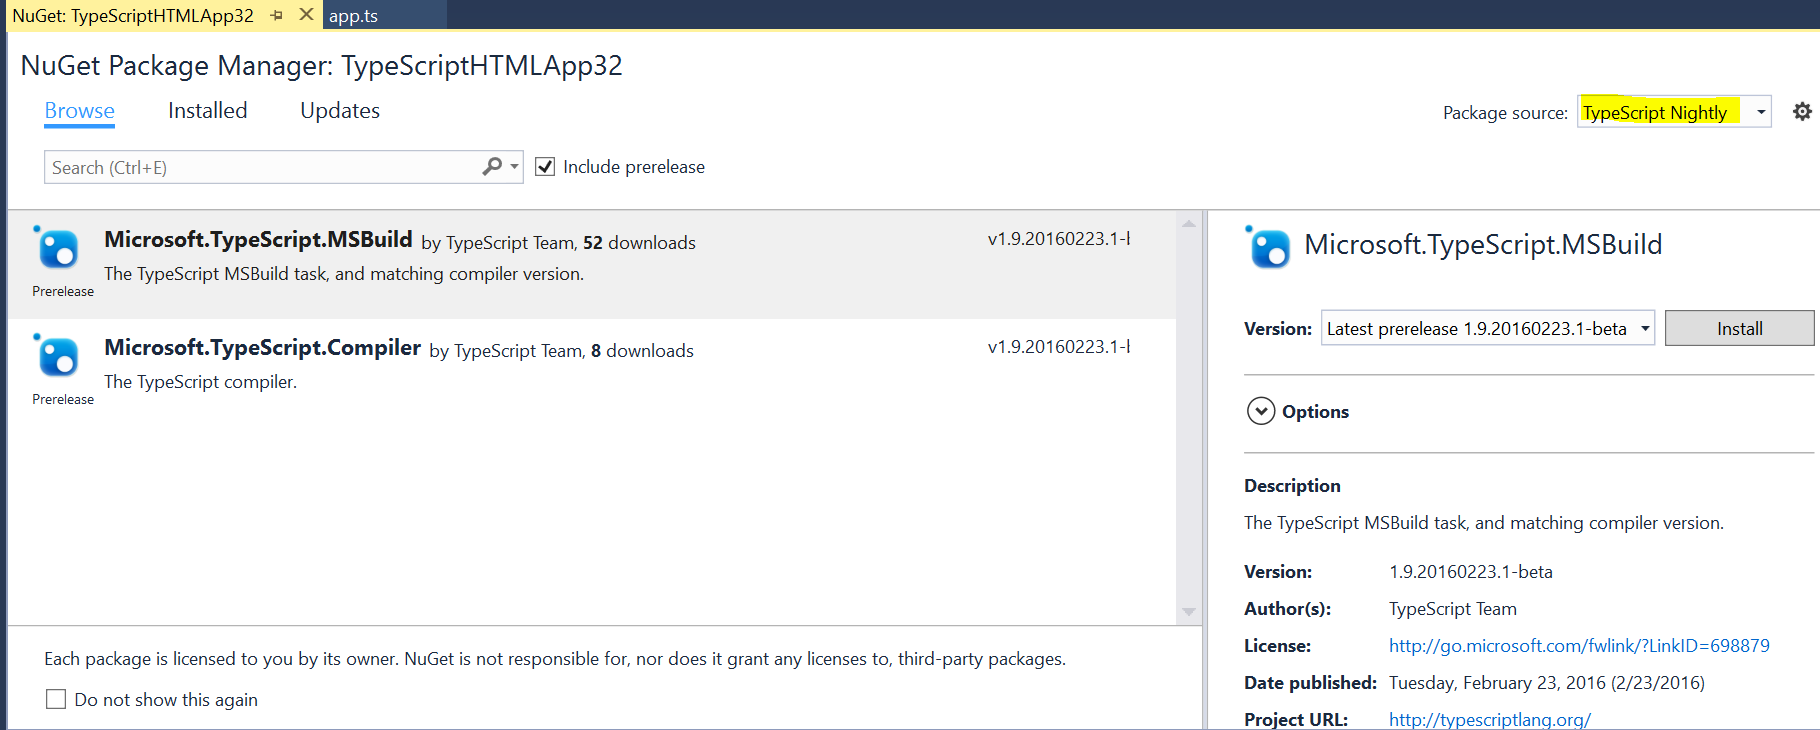 Search for NuGet package.